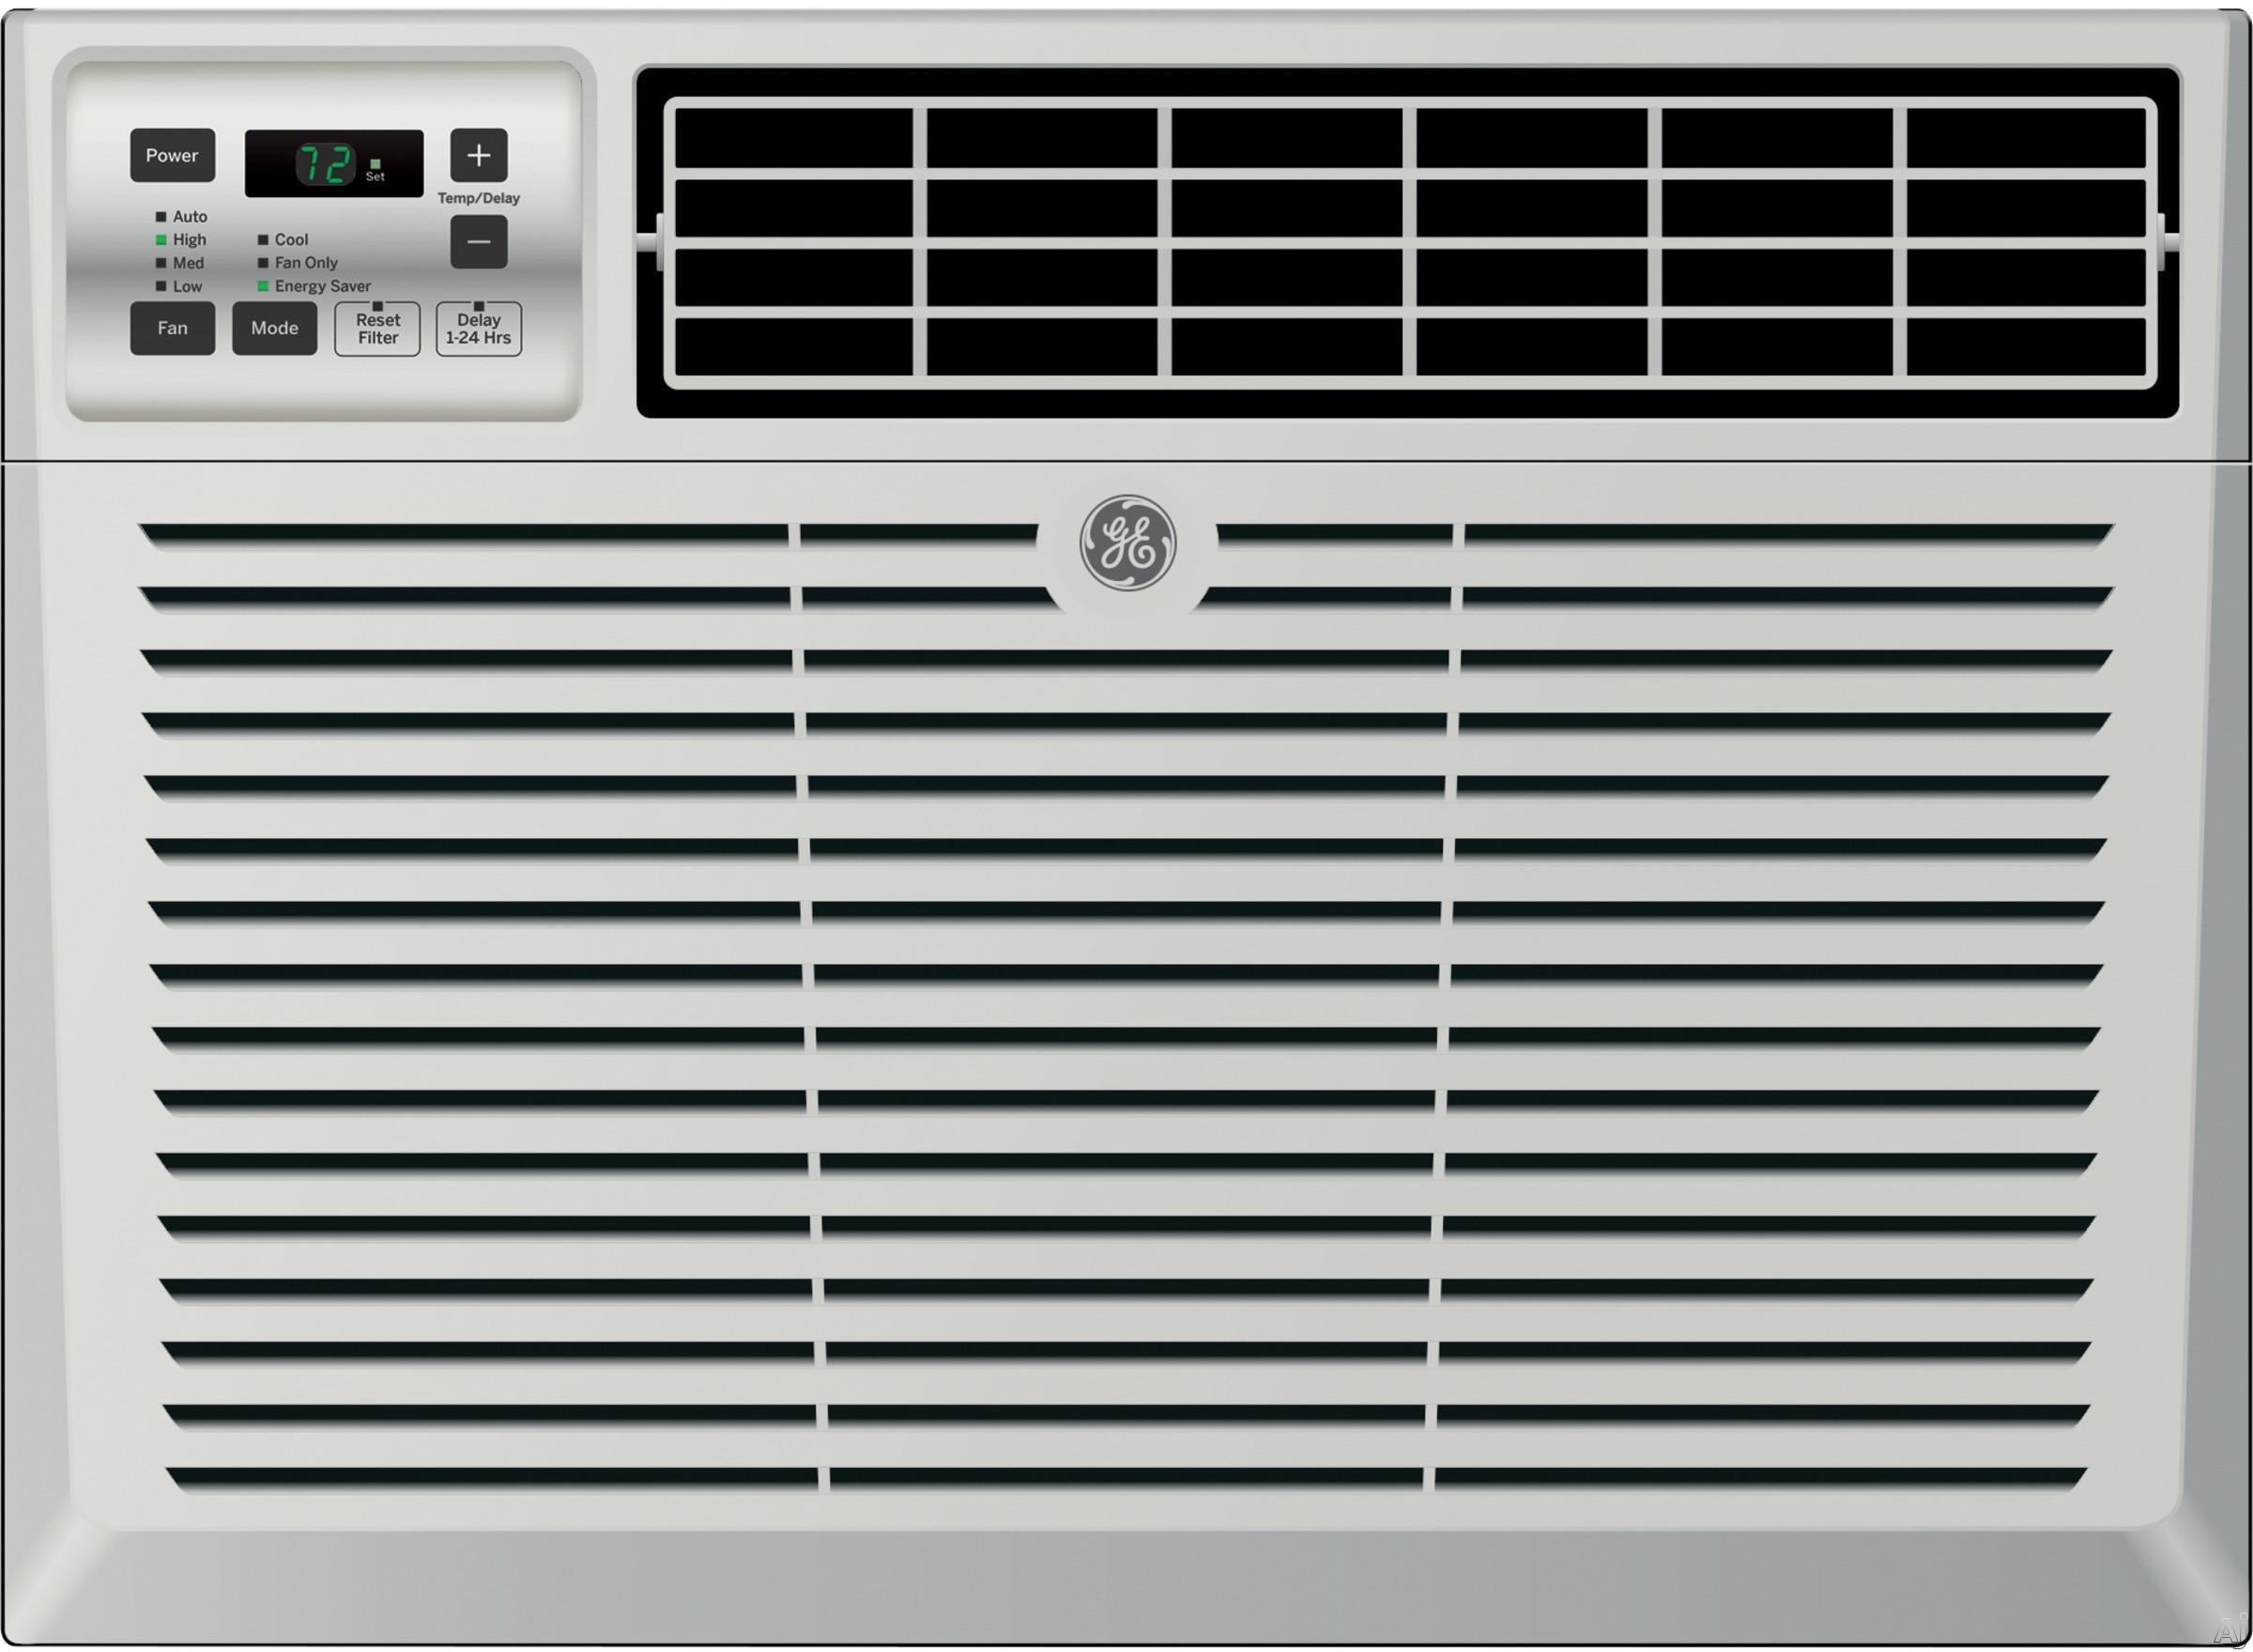 GE AEM18DV 18 000 BTU Room Air Conditioner with 425 CFM 11.8 CEER 5.5 Pts Hr Dehumidification 3 Fan Speeds Electronic Digital Thermostat with Remote EZ Mount Window Kit with Slide Out Chassis and ENER